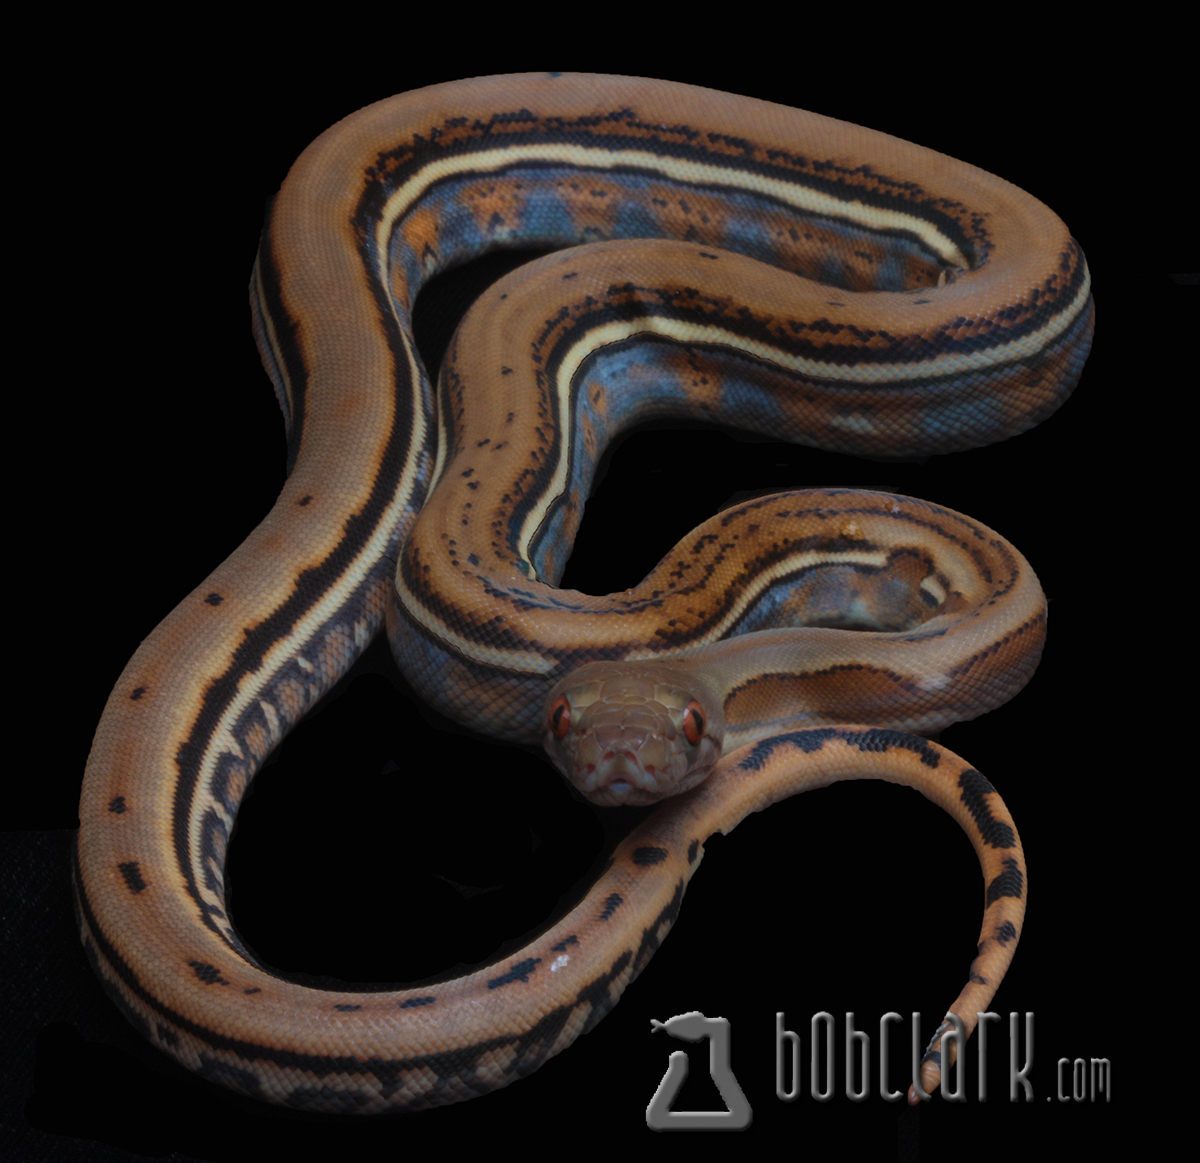 Bob Clark Reptiles : Available Reticulated Pythons